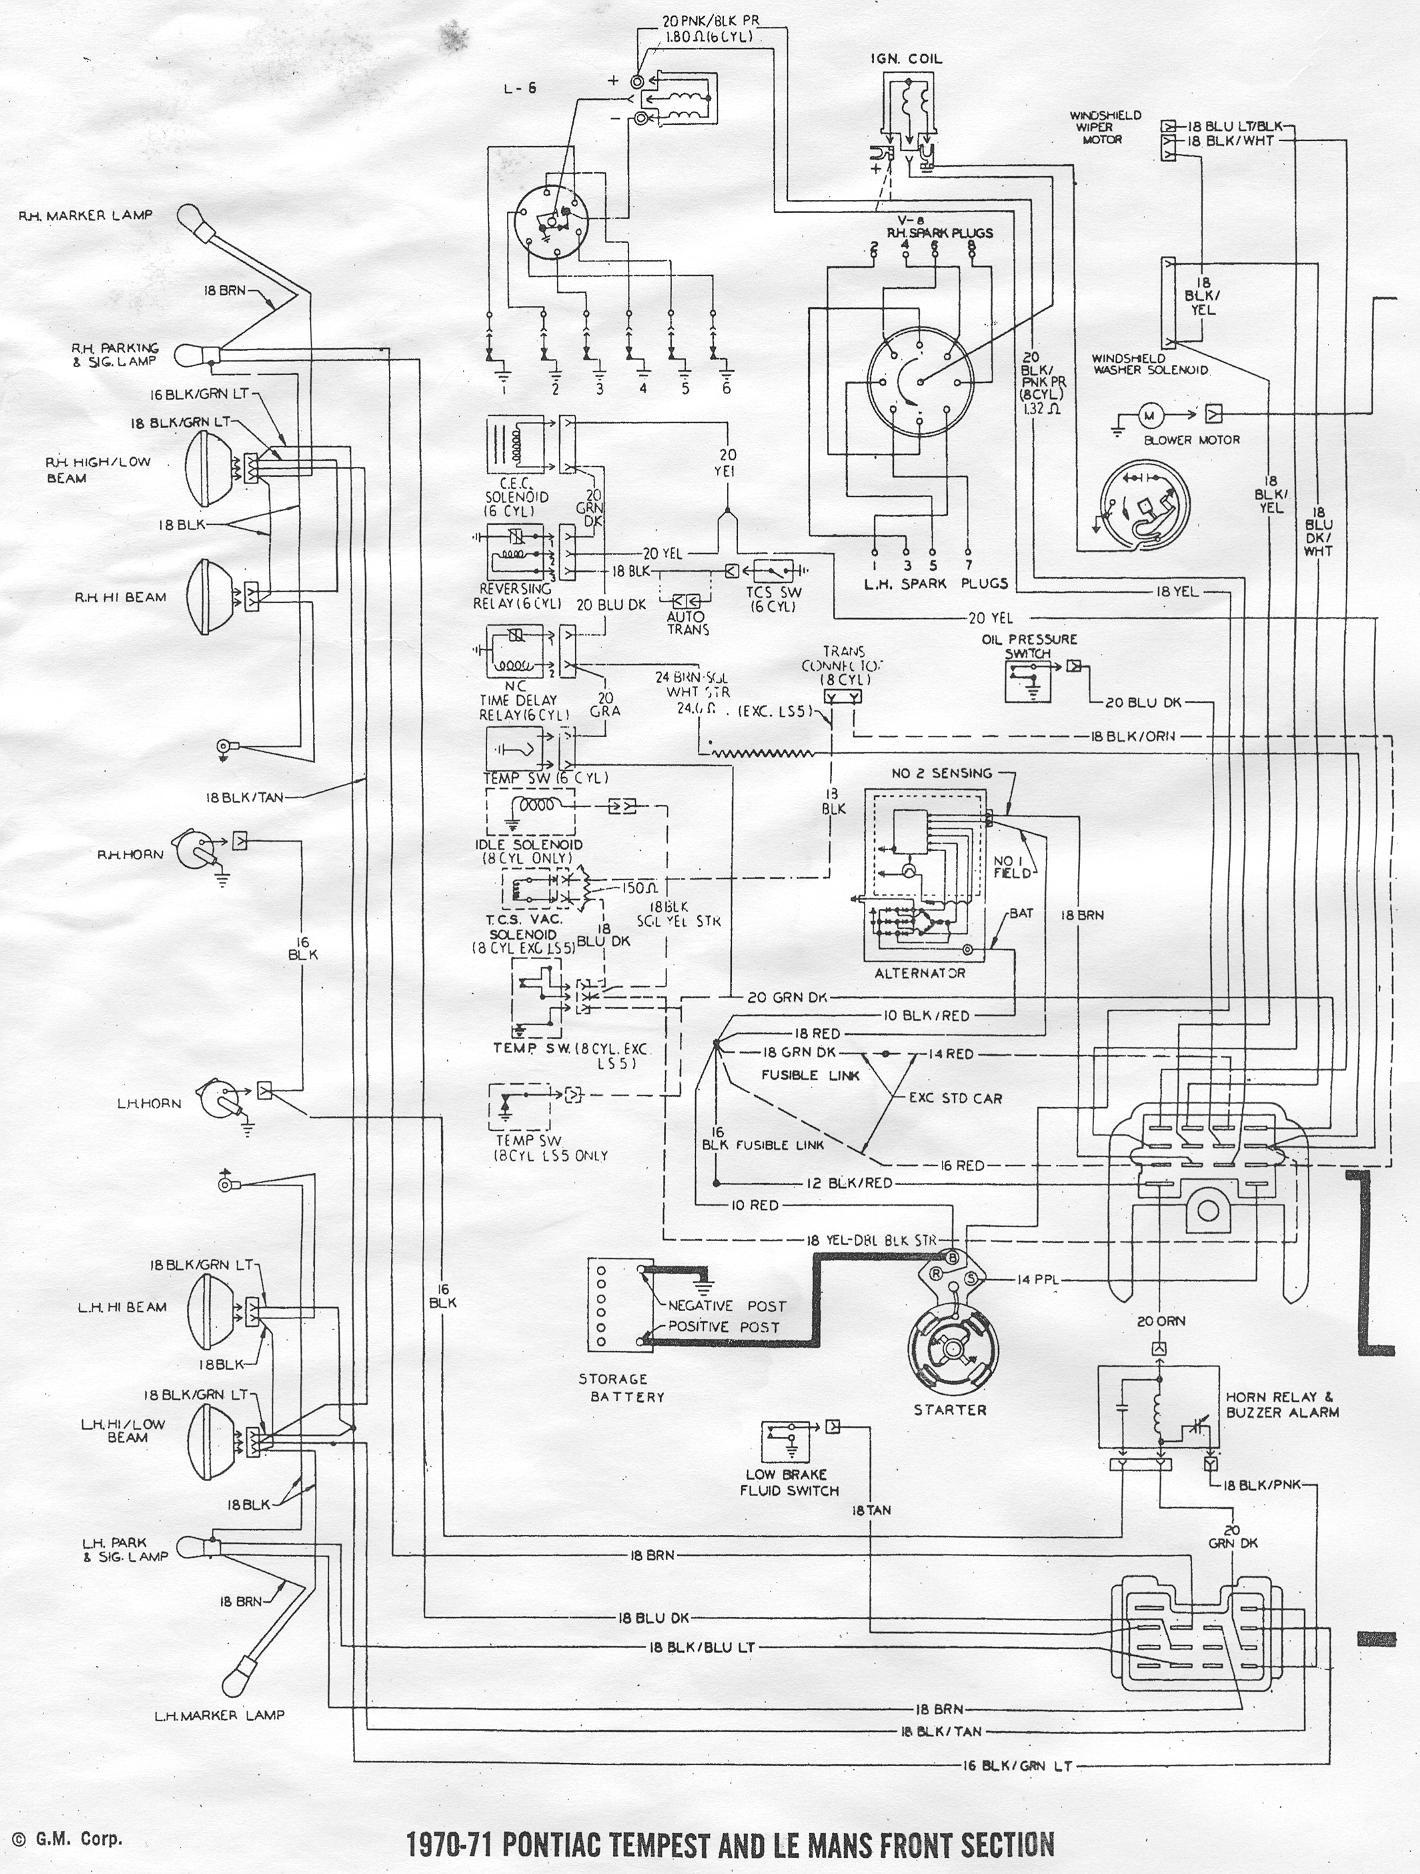 1971 gmc dash wiring el camino wiring harness chevy truck wiring chevelle horn relay wiring diagram wiring diagrams 1968 chevelle horn relay diagram jodebal com cheapraybanclubmaster Choice Image